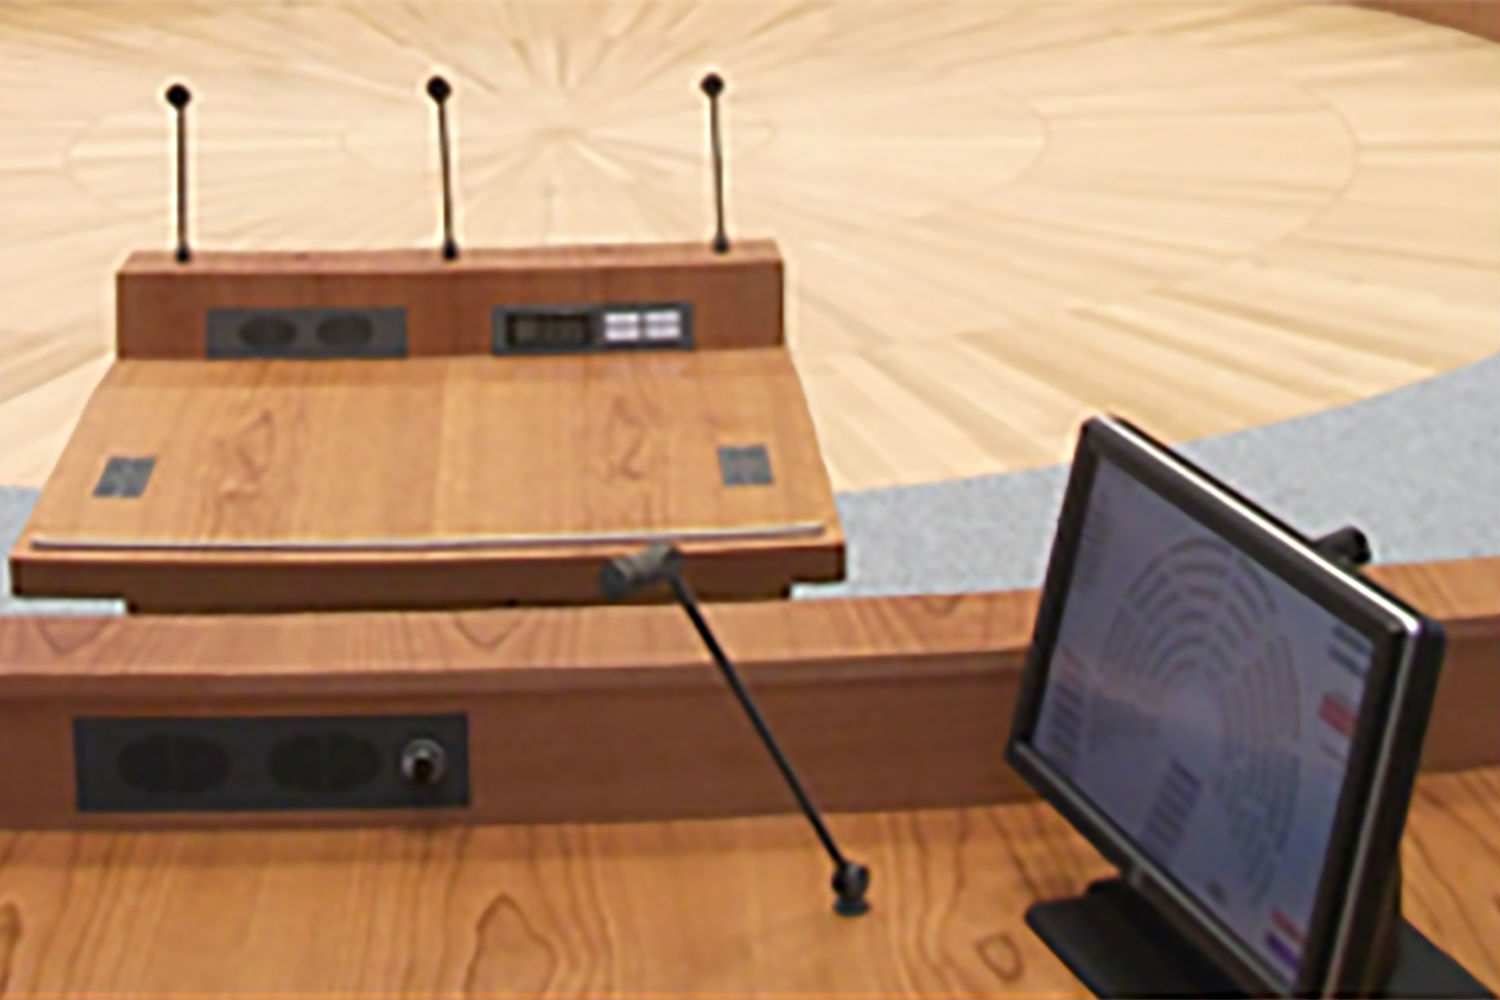 Parliament Hall Landtag in Dusseldorf, Germany. ACA-AMC, a WSDG company, in charge of the room acoustics and electro-acoustical systems. Electro-acoustics